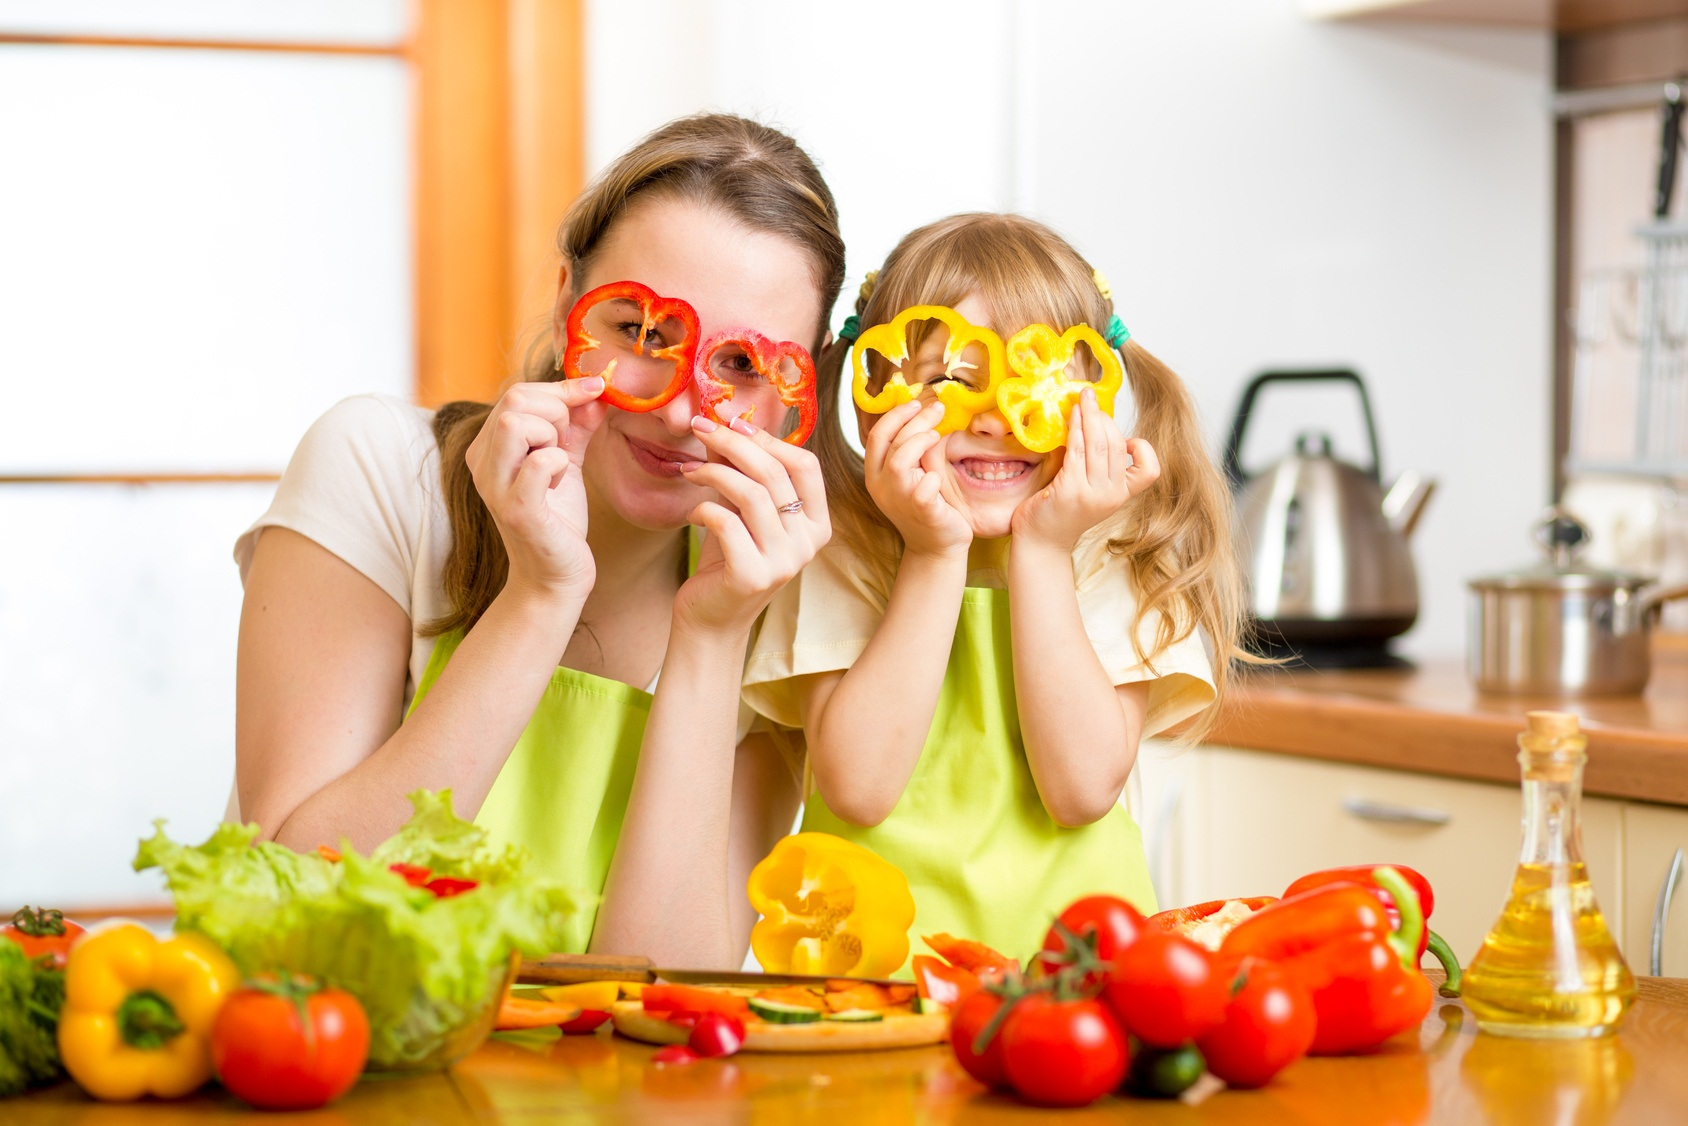 mother and kid preparing healthy food and having fun